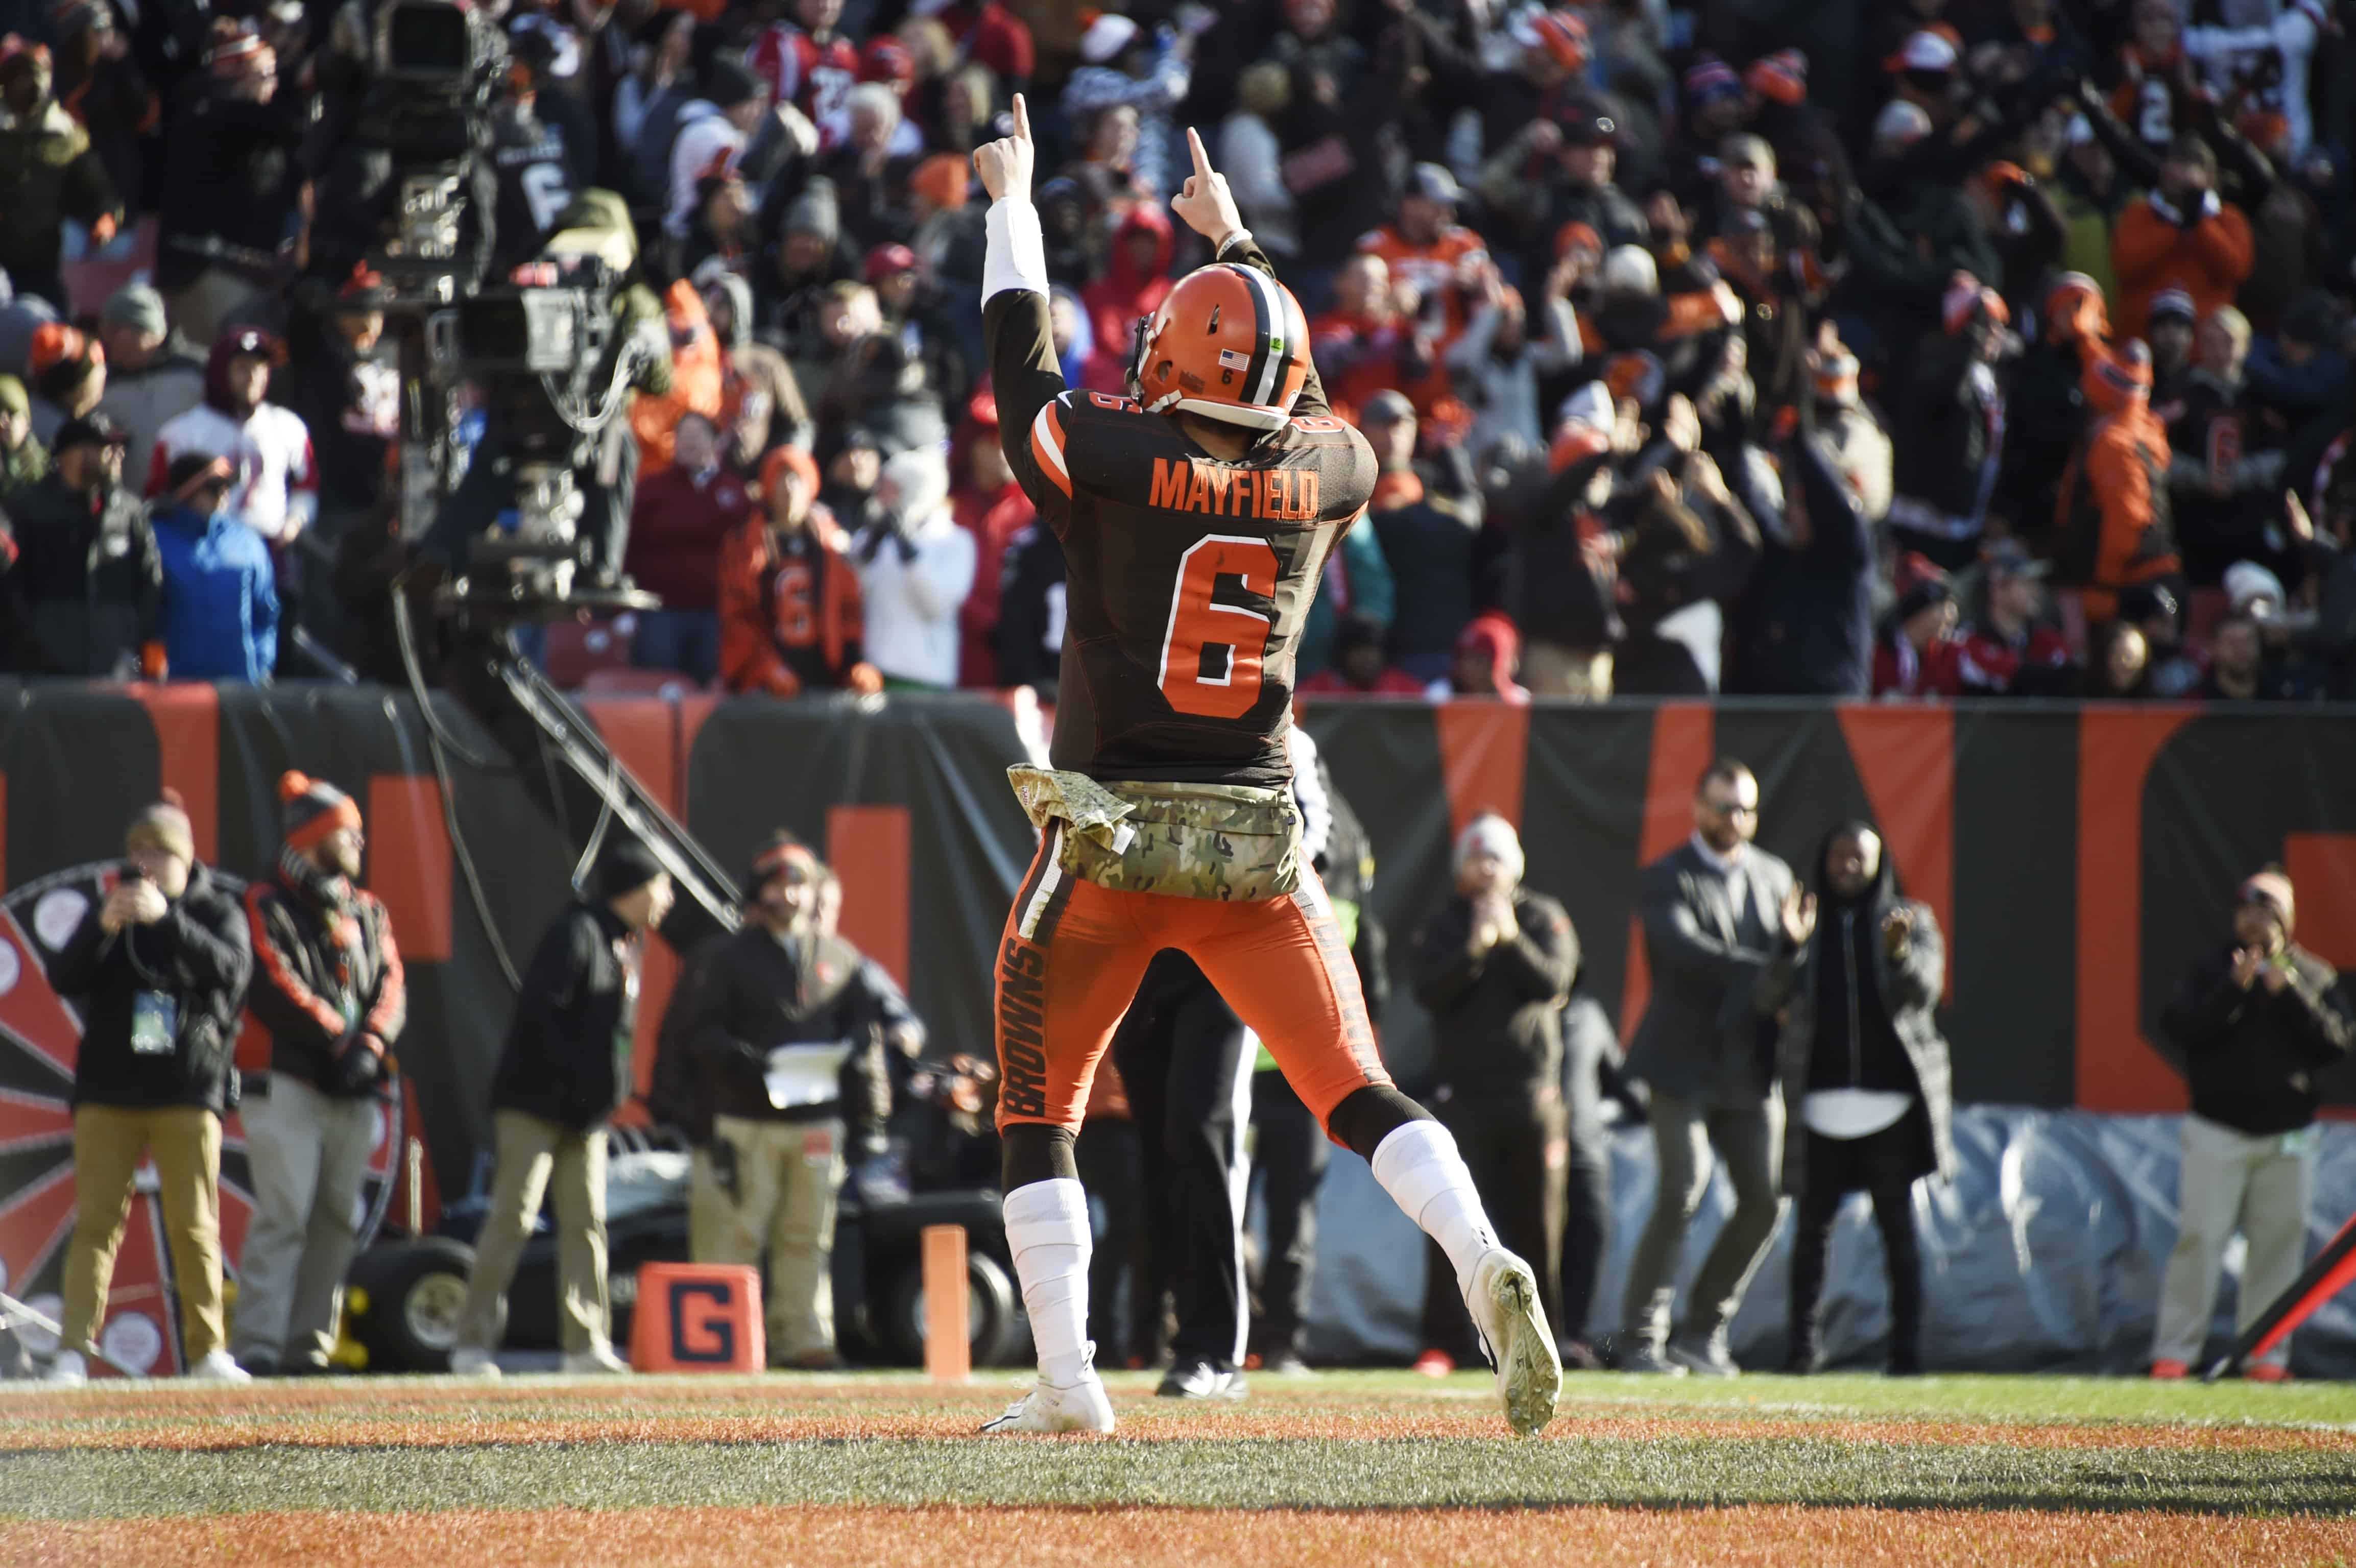 Baker Mayfield celebrates in end zone after scoring touchdown